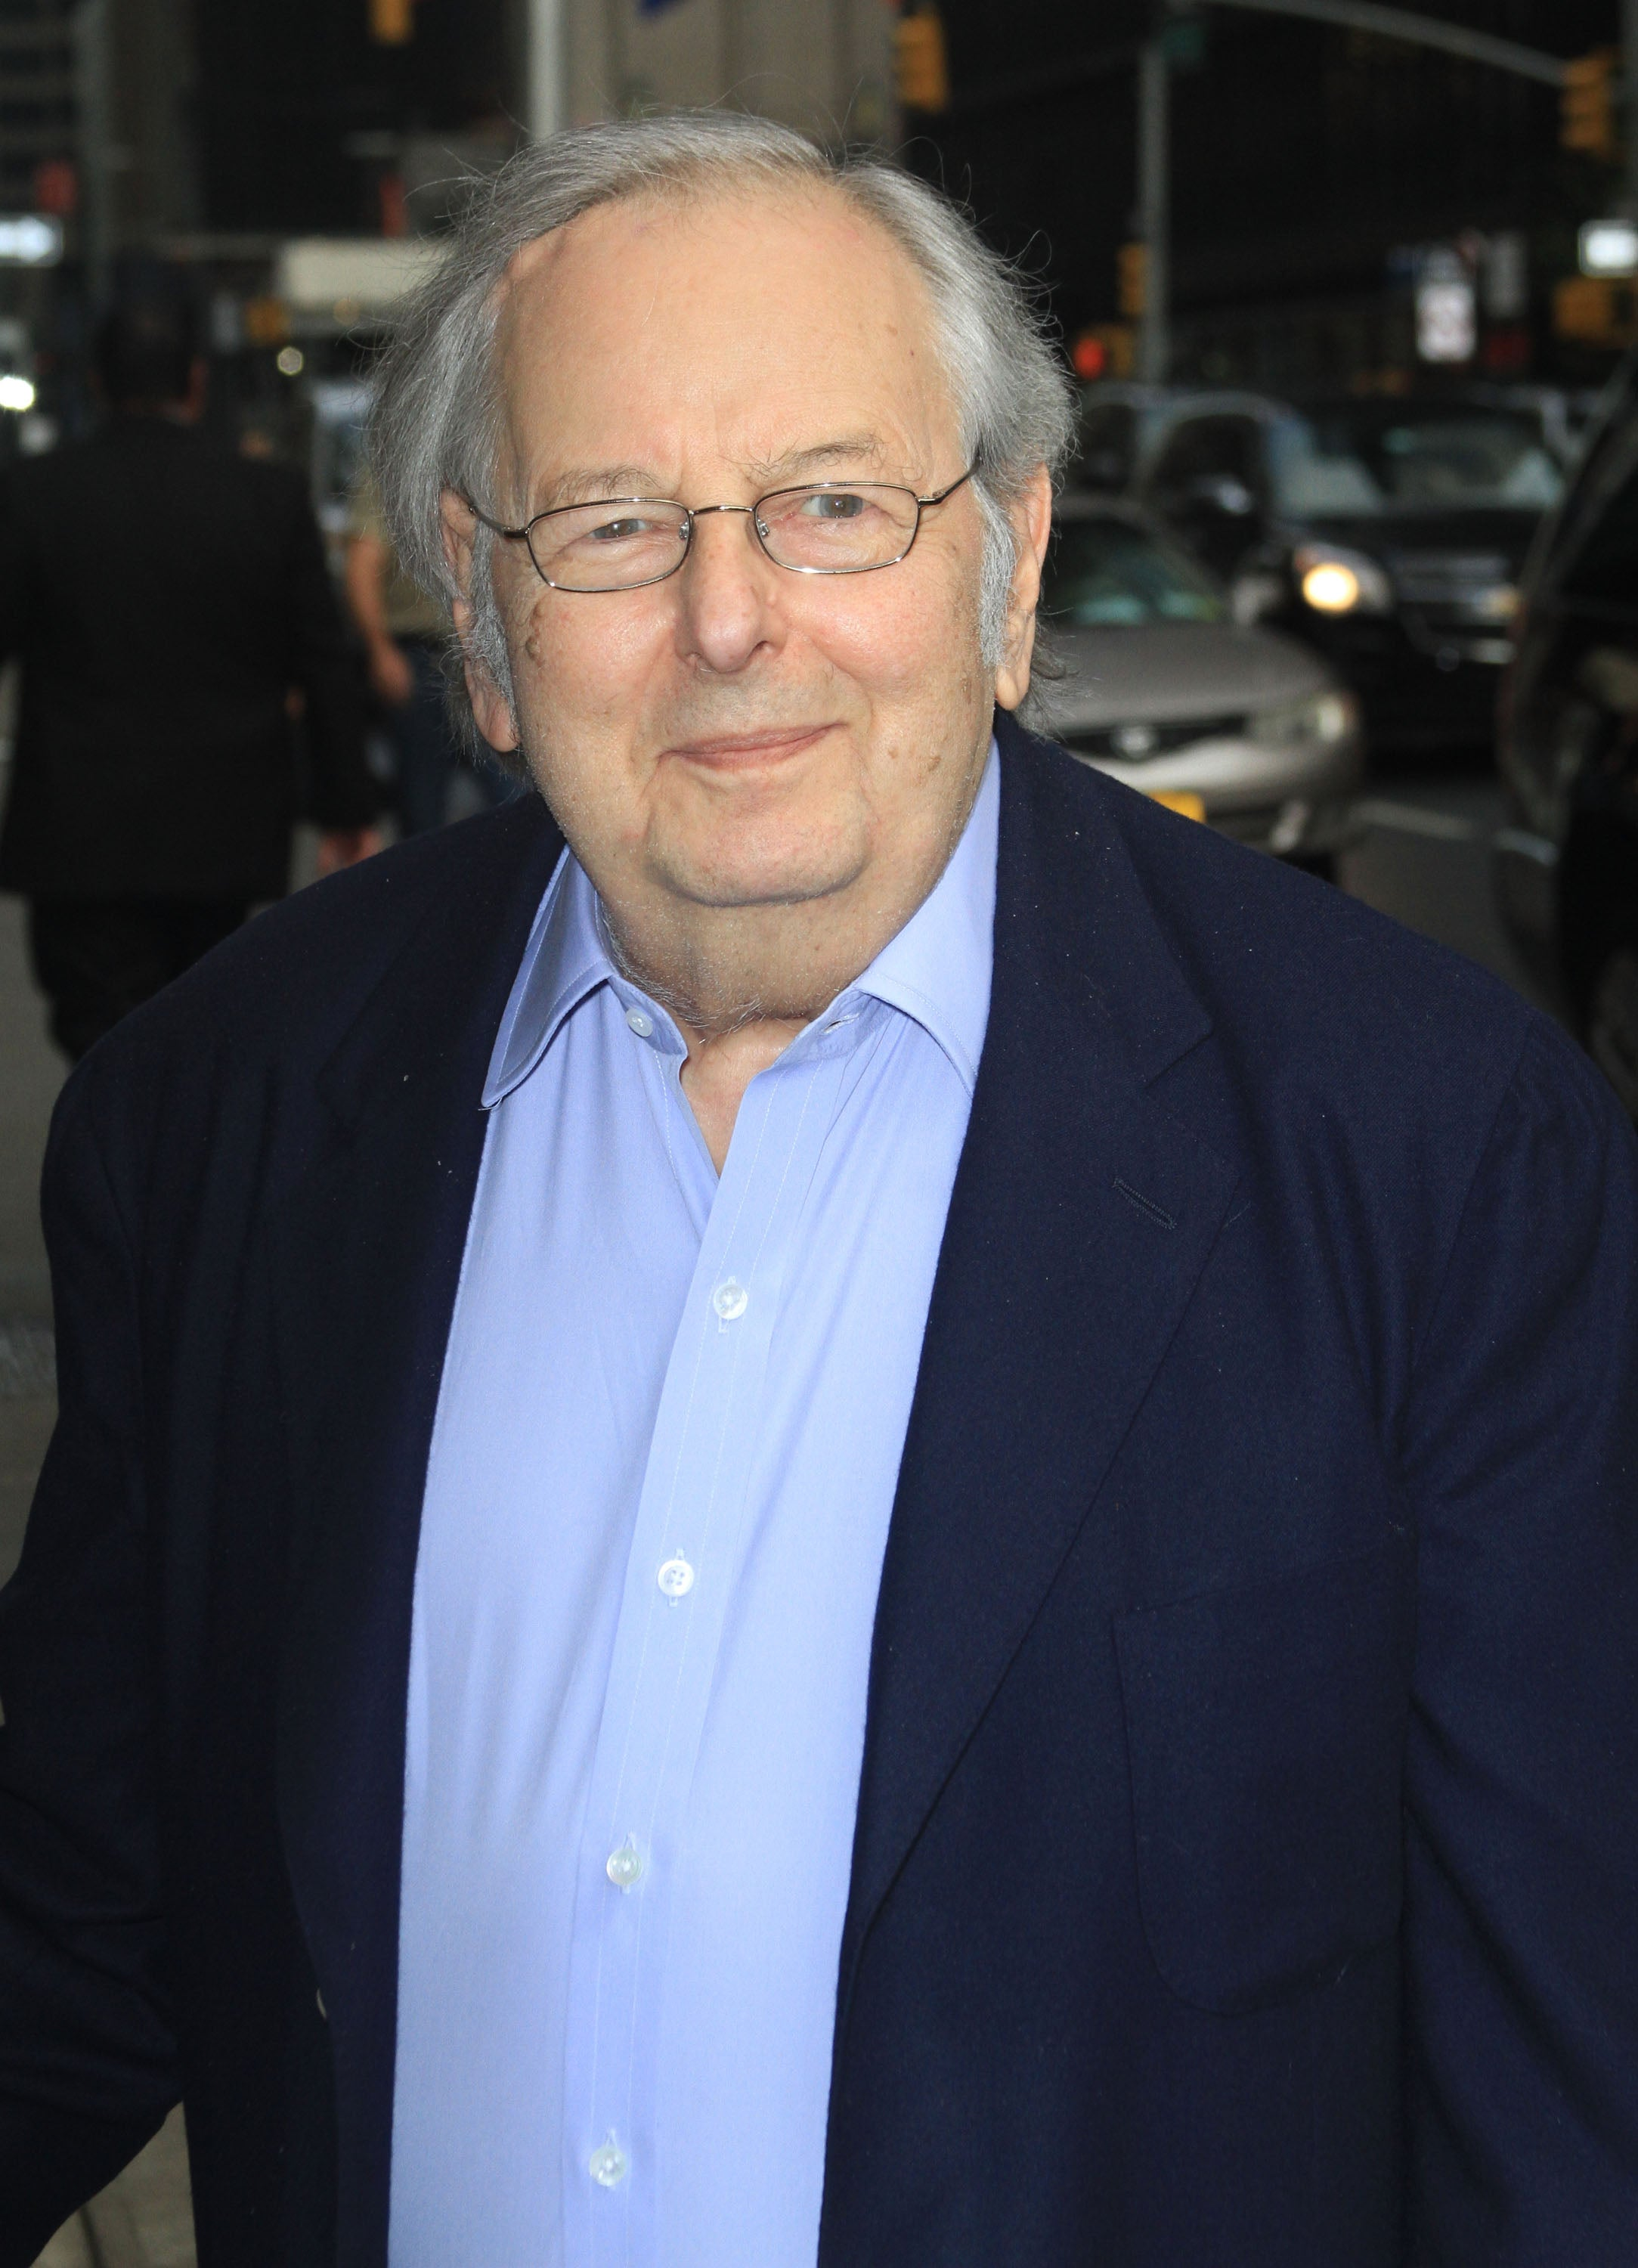 The Emmys Mistook Composer Leonard Slatkin for the Late André Previn in the In Memoriam